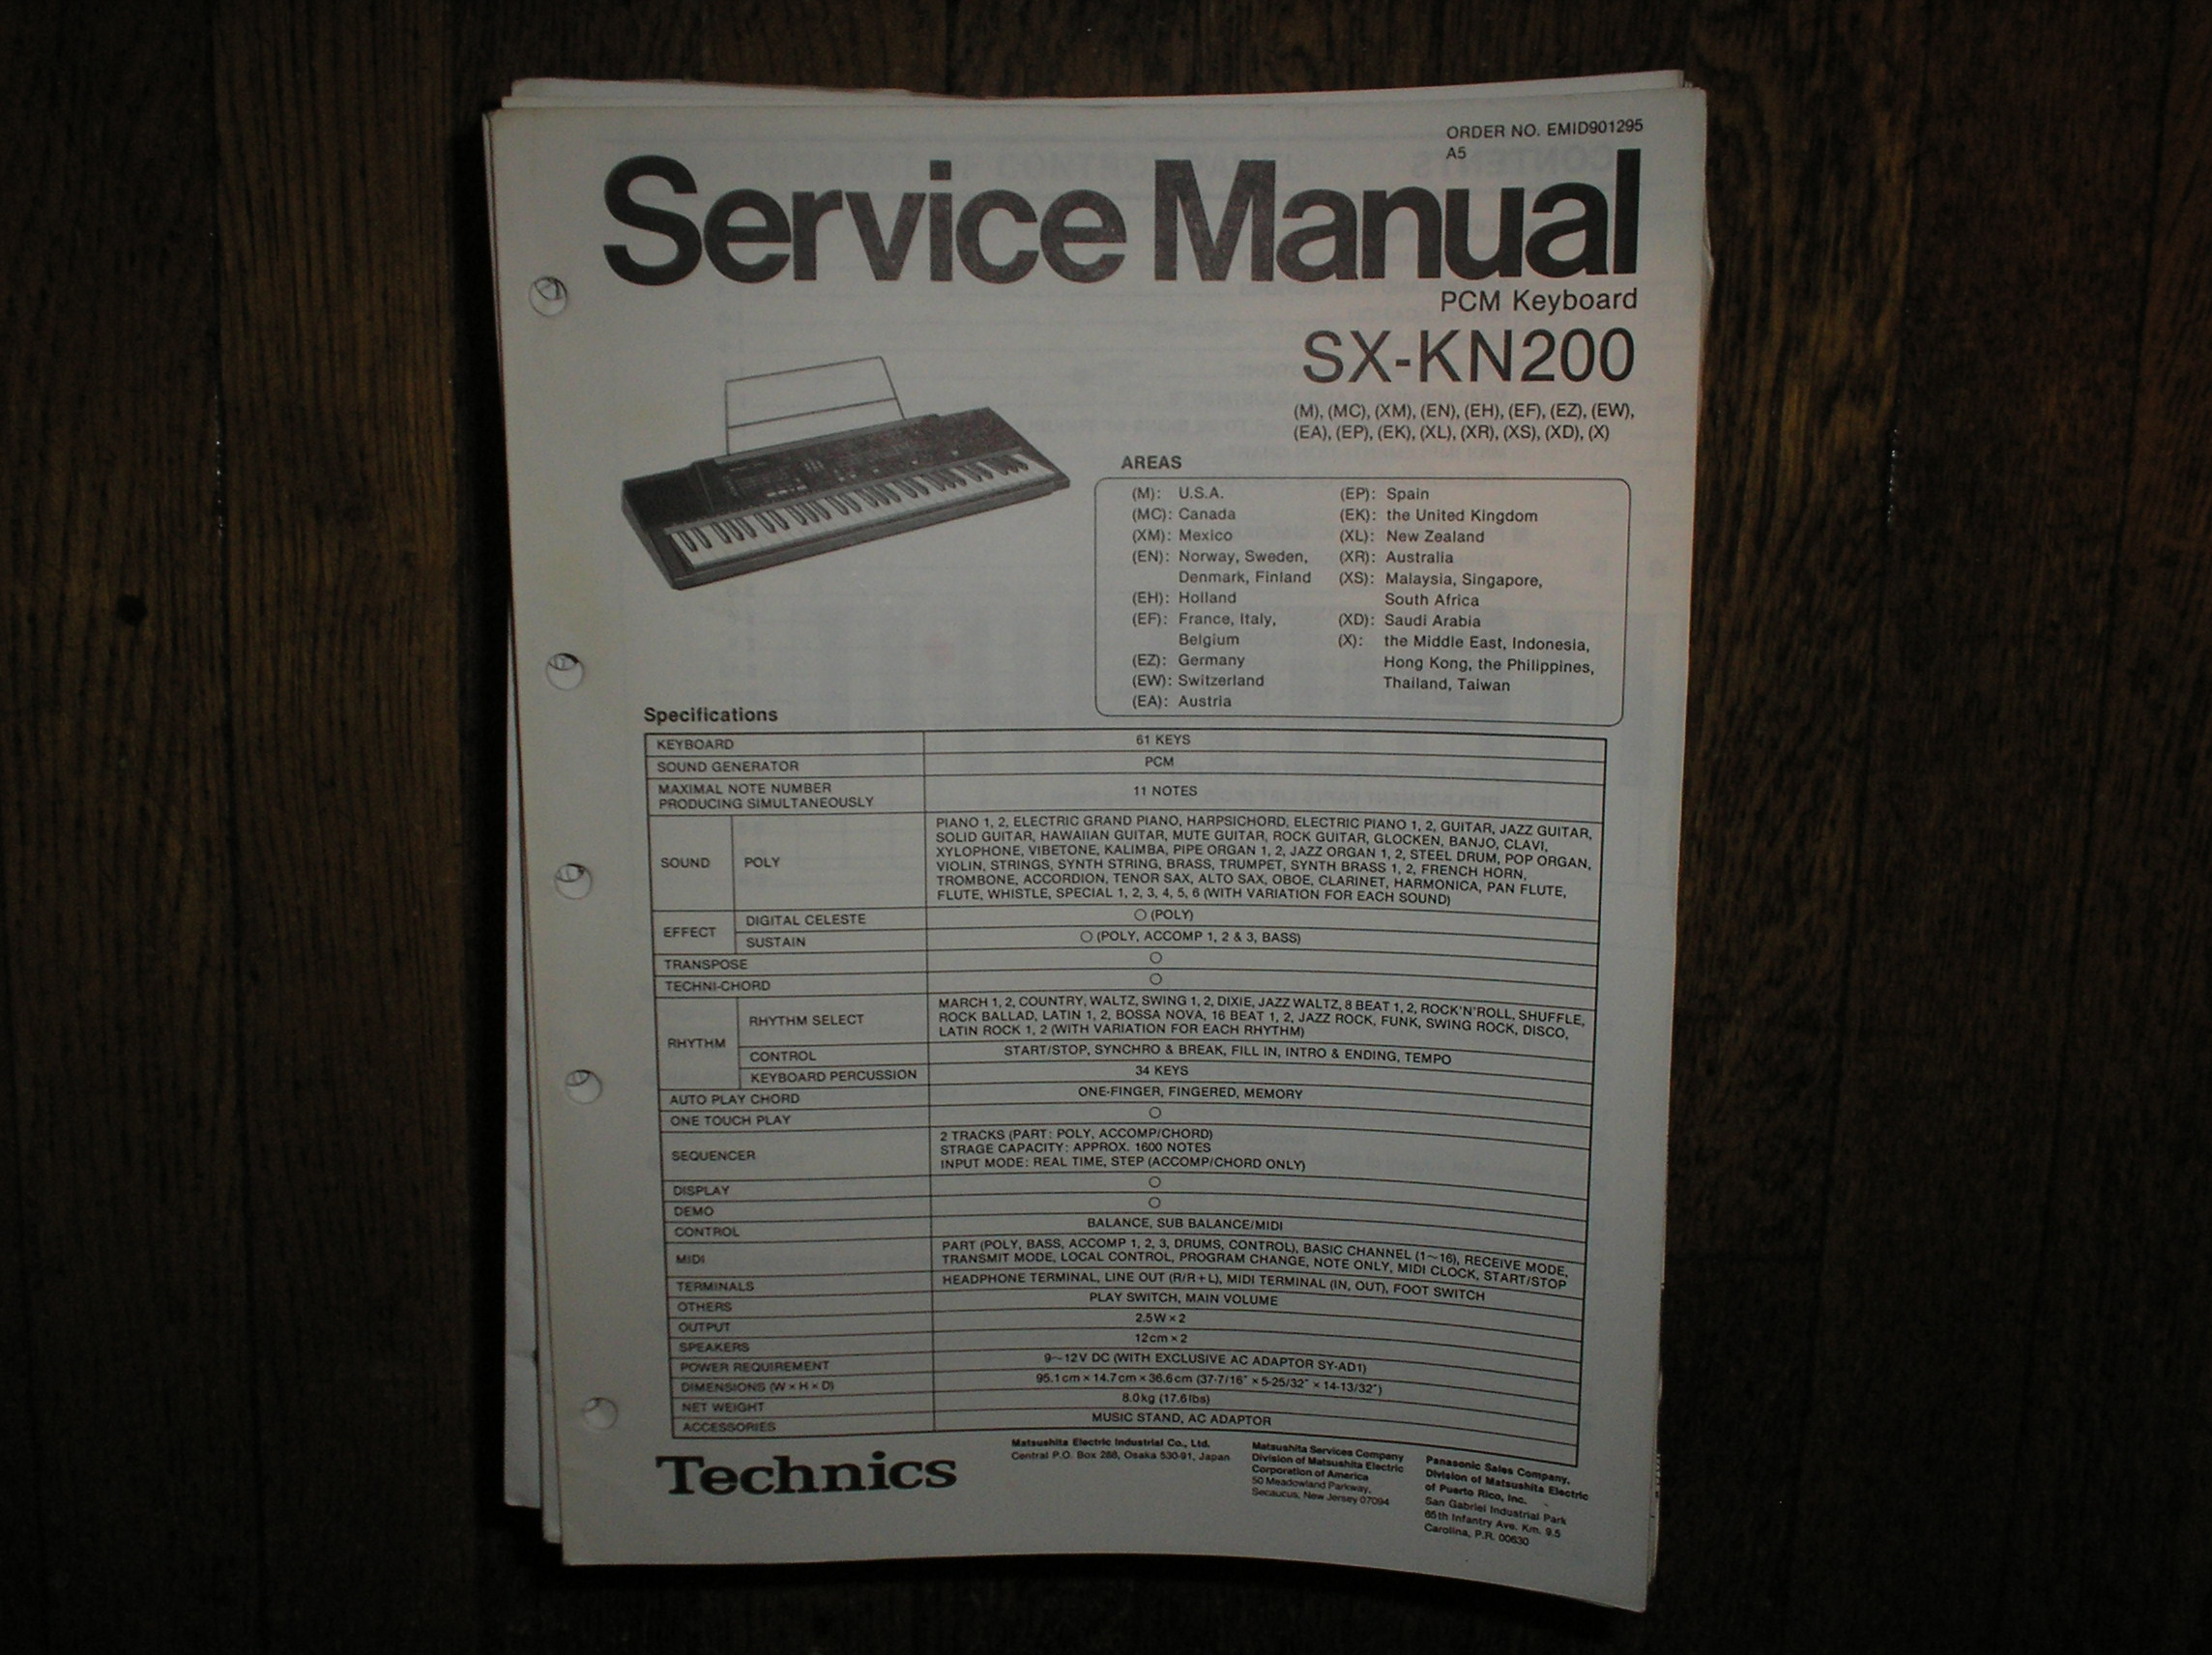 SX-KN200 PCM Keyboard Service Manual